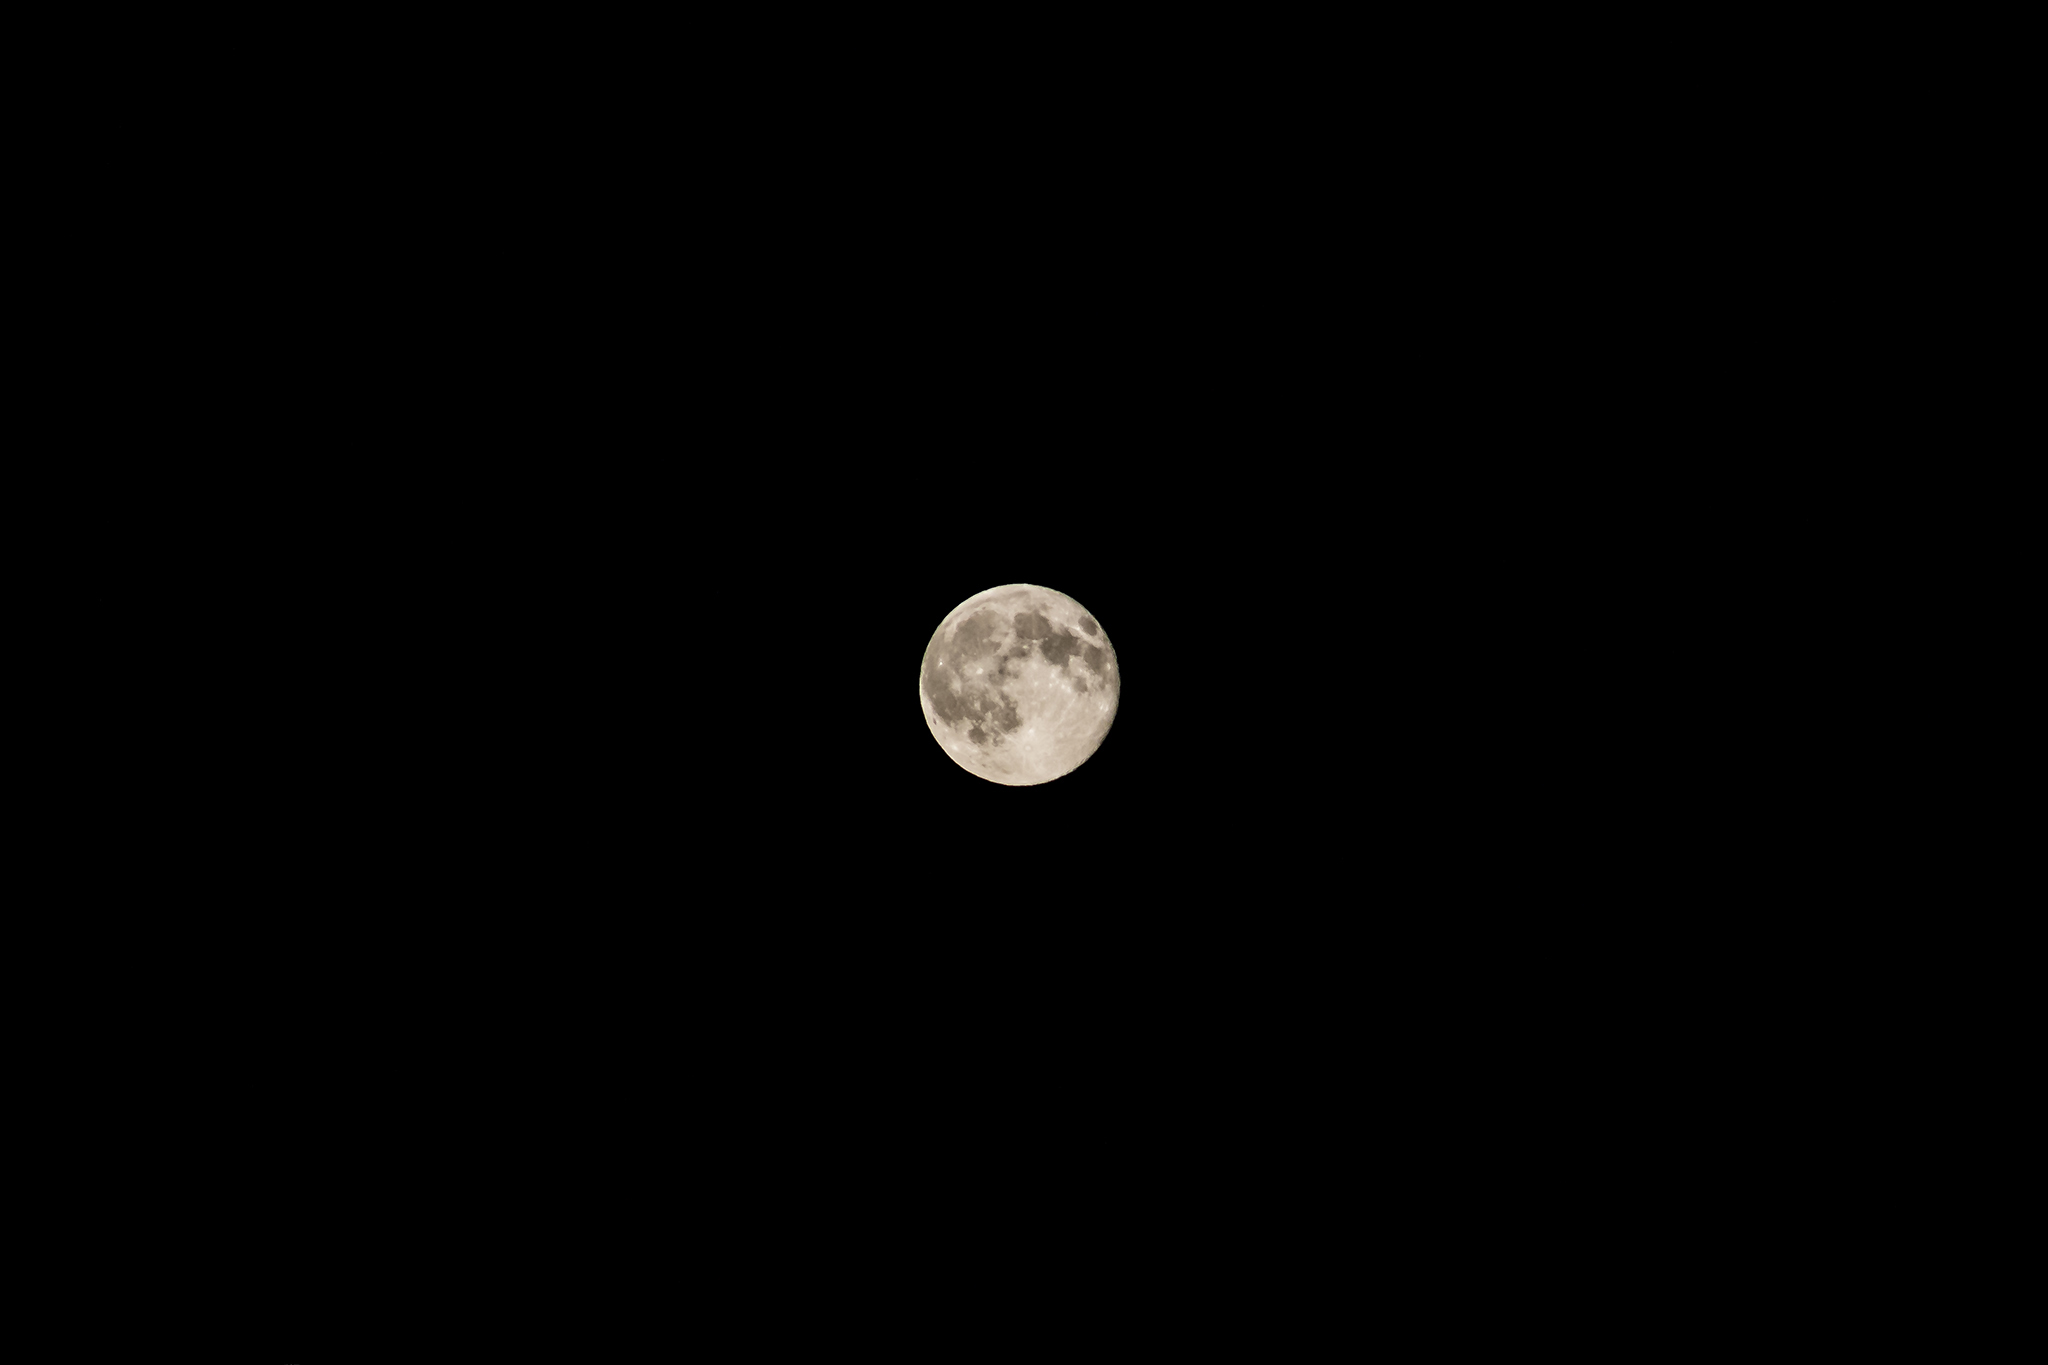 f/5.6 1/200 ISO400 @ 200mm | Plain and simple.